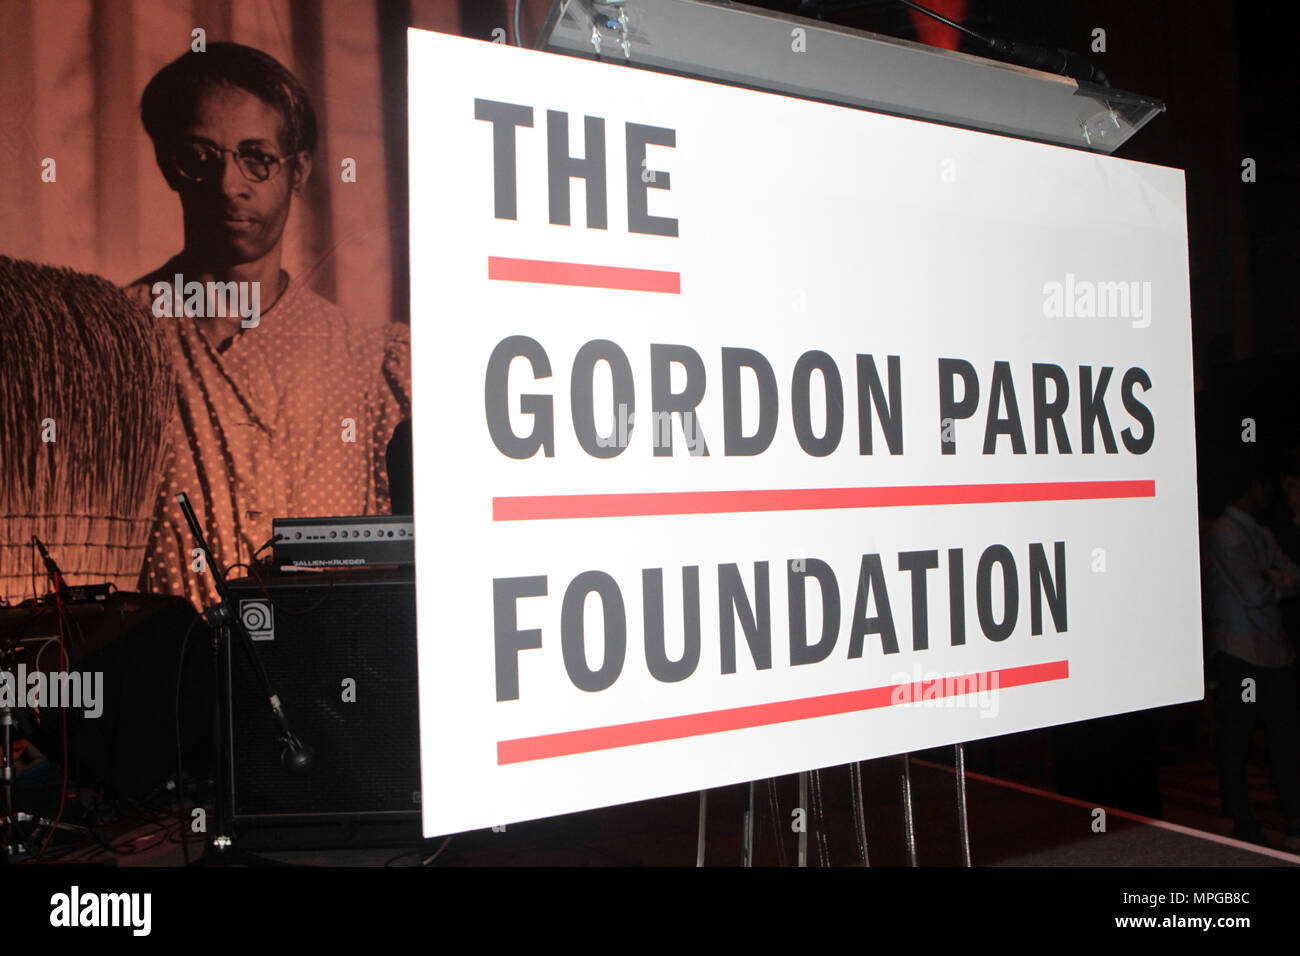 New York, NY, USA. 22nd May, 2018. Atmosphee during the Gordon Parks Foundation Awards Dinner & Auctionn: Celebrating the Arts & Humanitarianism held at Cipriani 42nd Street on May 22, 2018 in New York City. Credit: Mpi43/Media Punch/Alamy Live News - Stock Image